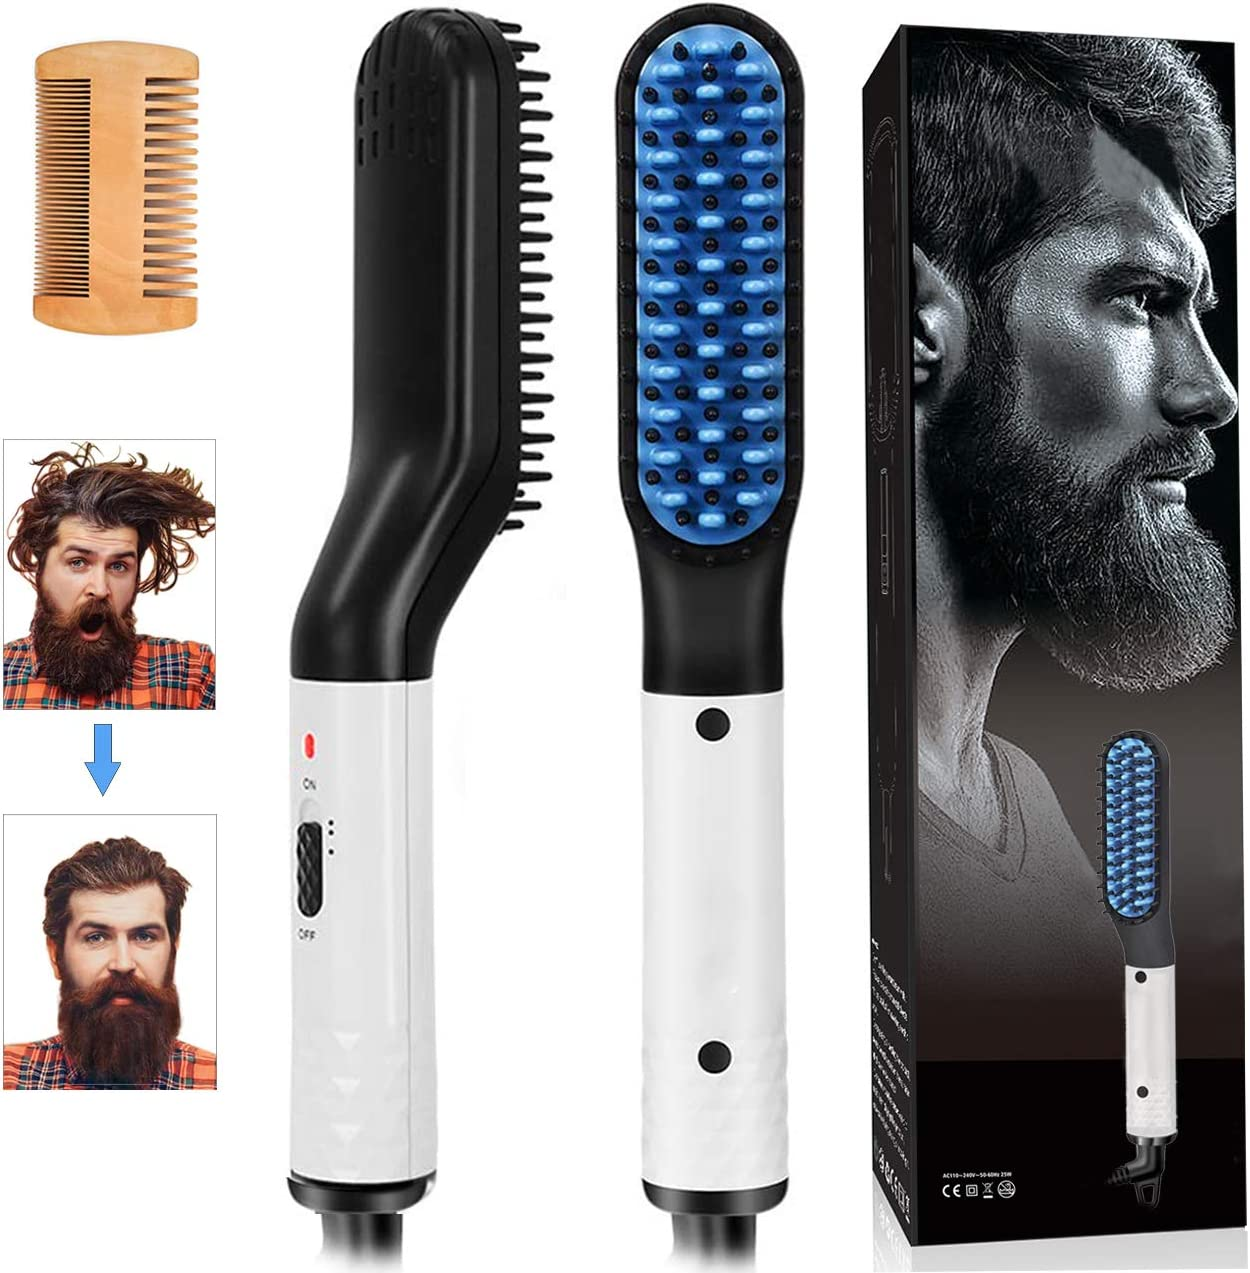 Beard Straightener Brush 2in1 Hair Comb For Men Eectric Lonic Anti Scald Hot Comb Hair Straightener Portable For Long Beard Or Curly Hair Dual Voltage 110 240v Great For Travel And Home Blue Amazon Co Uk